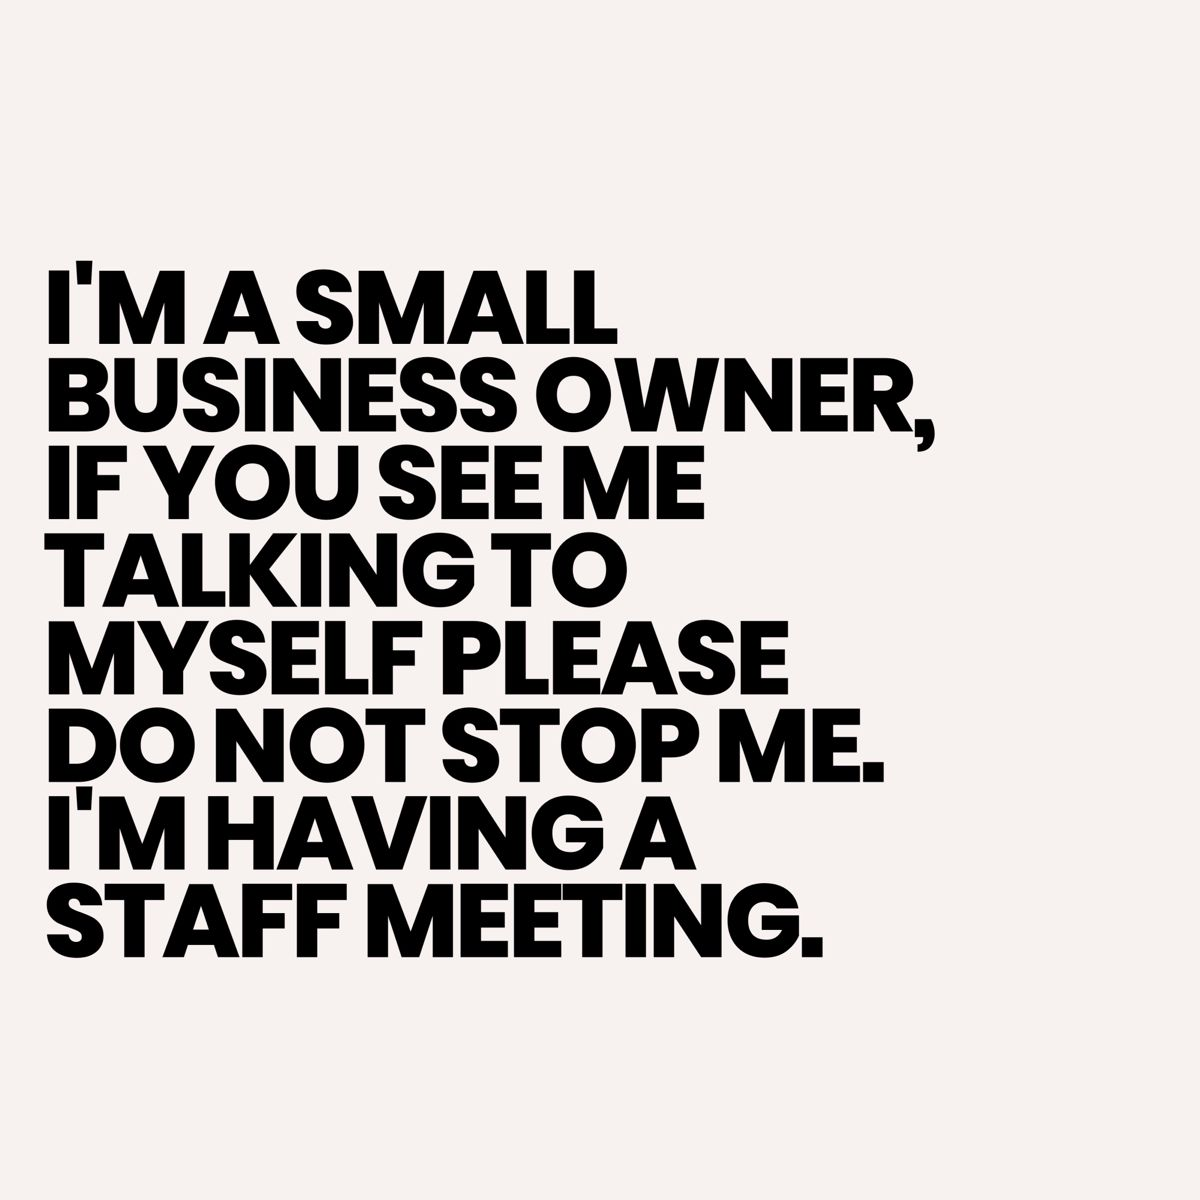 Funny Business Quotes Business Quotes Funny Small Business Owner Quotes Making A Business Plan